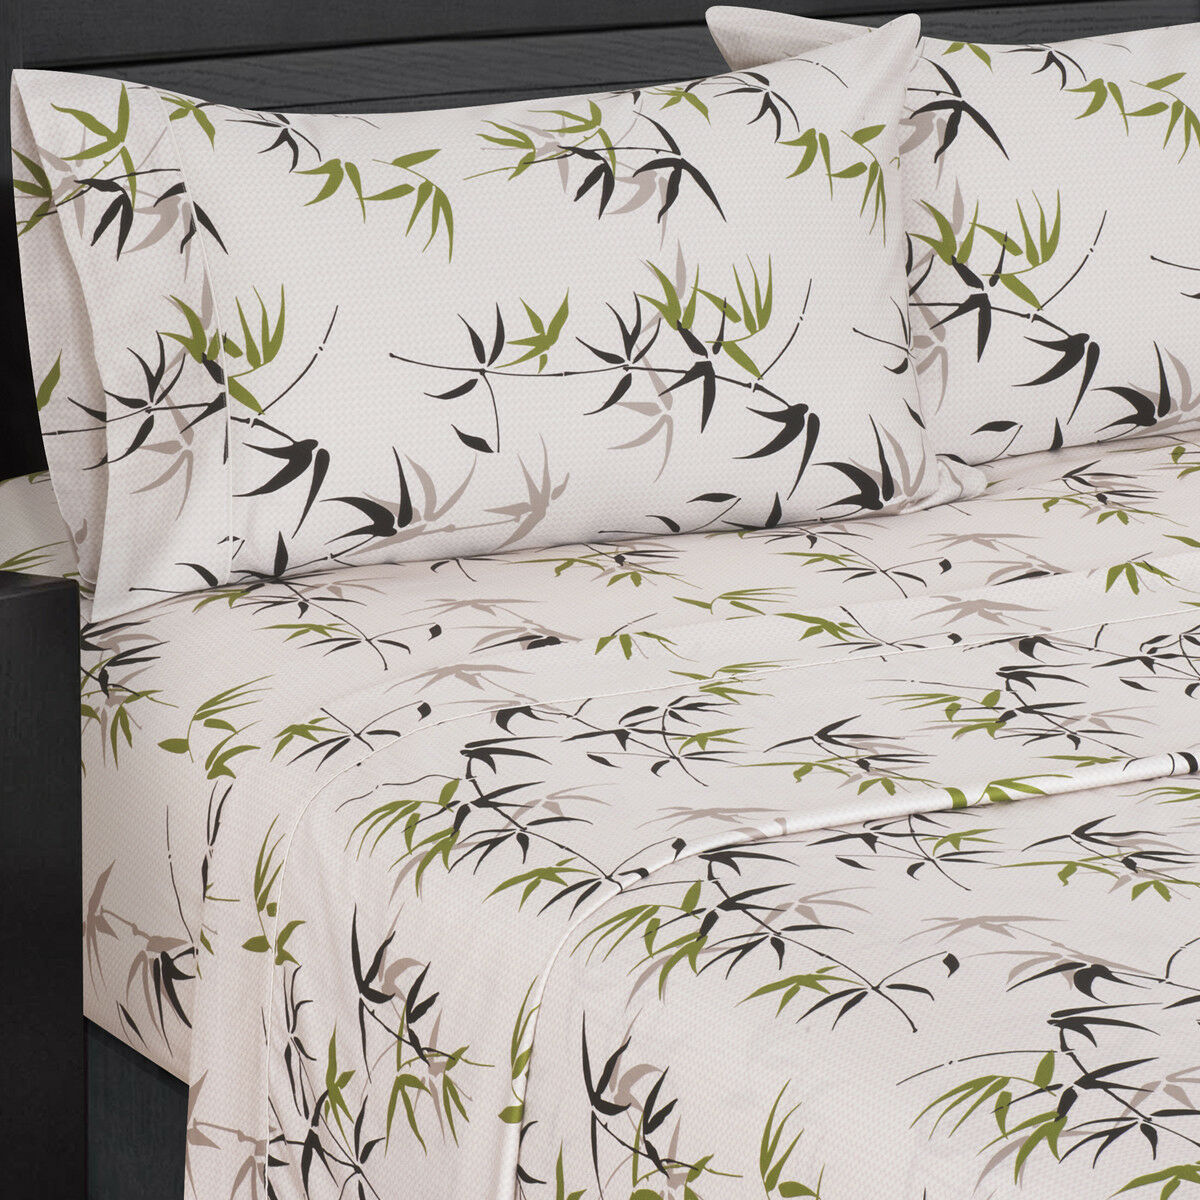 Fern 300 Thread Count Floral Print Bed Sheets, 100% Cotton Printed Bed Sheet Set